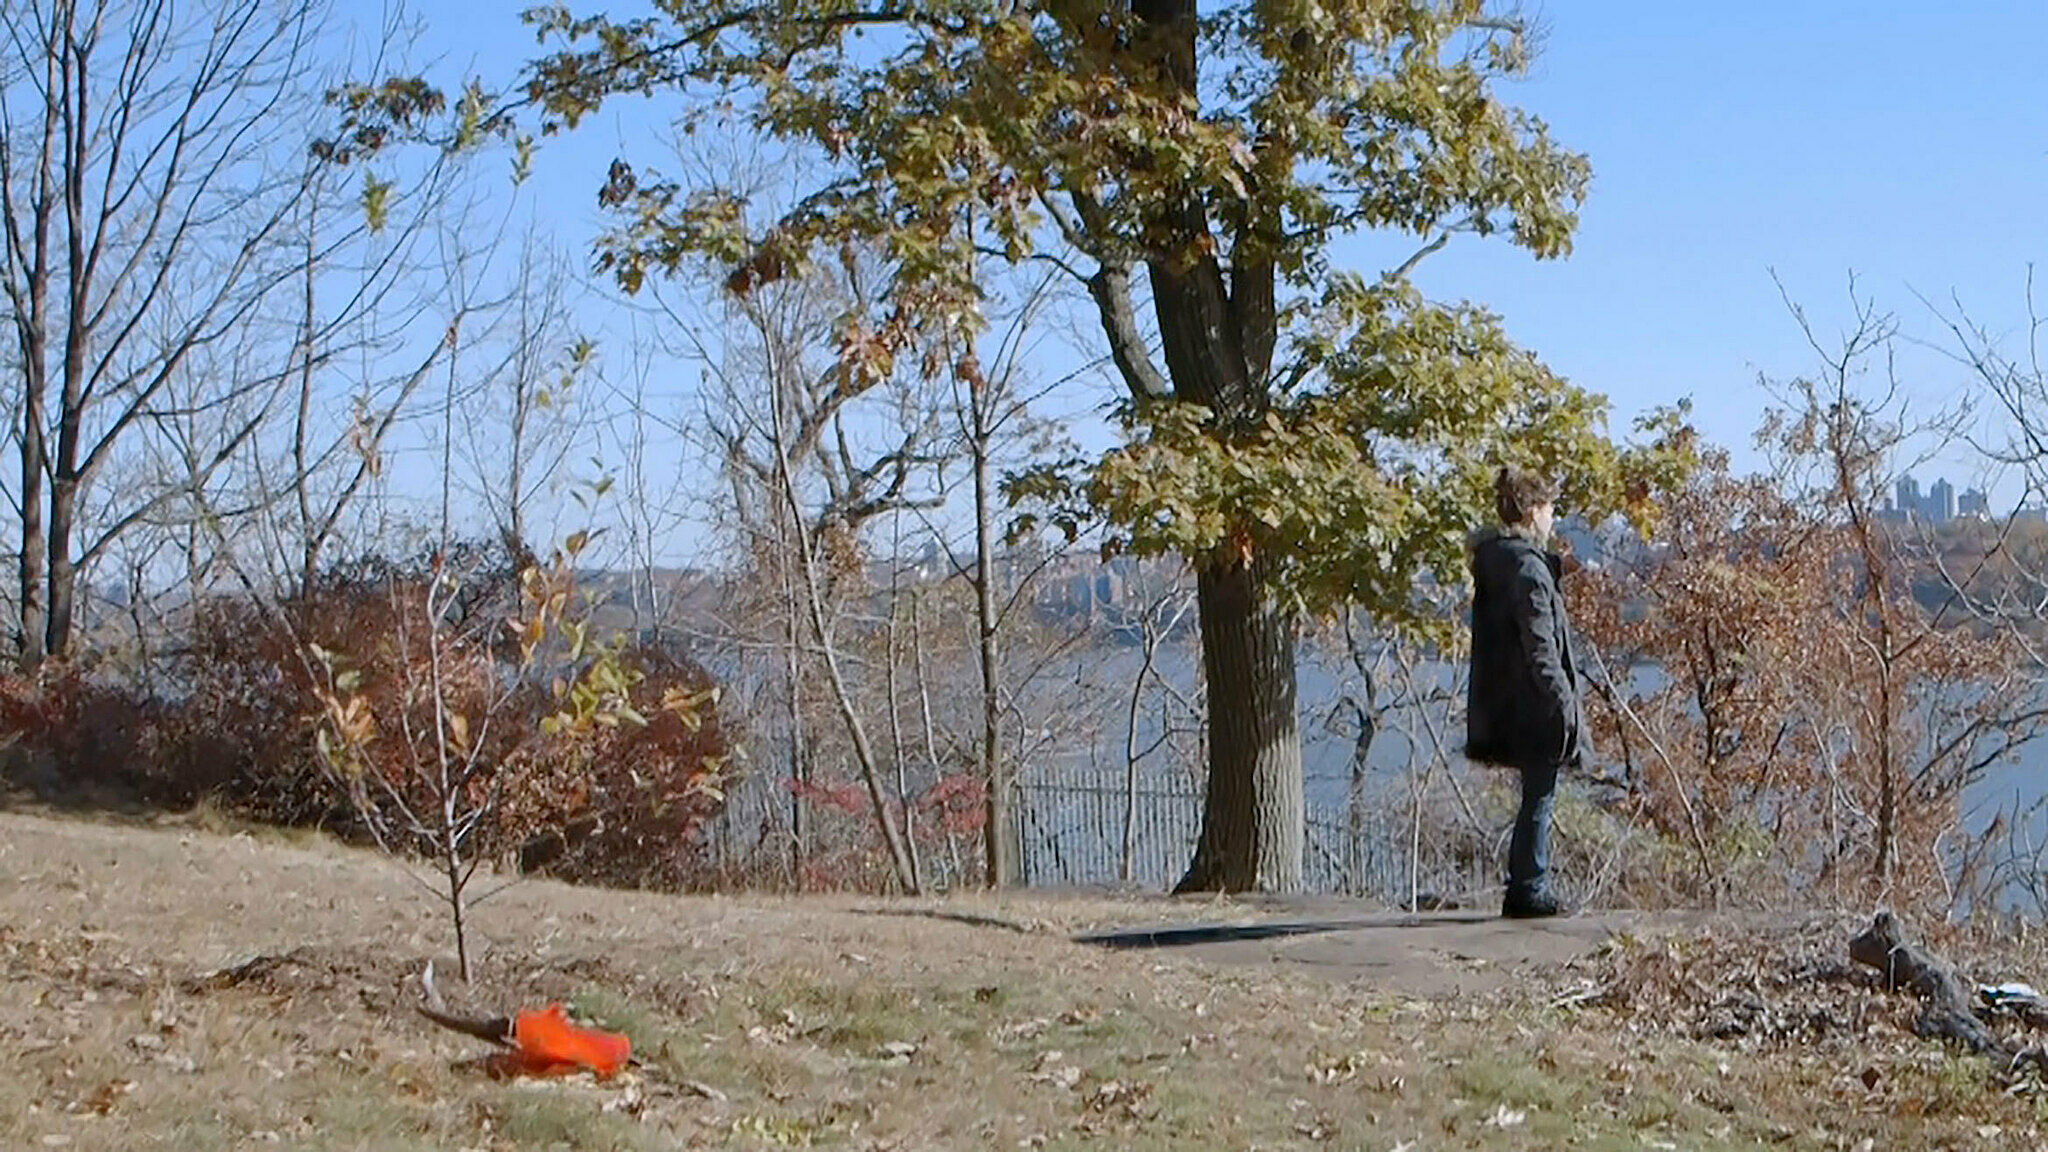 Still of a person standing outdoors looking over a river.